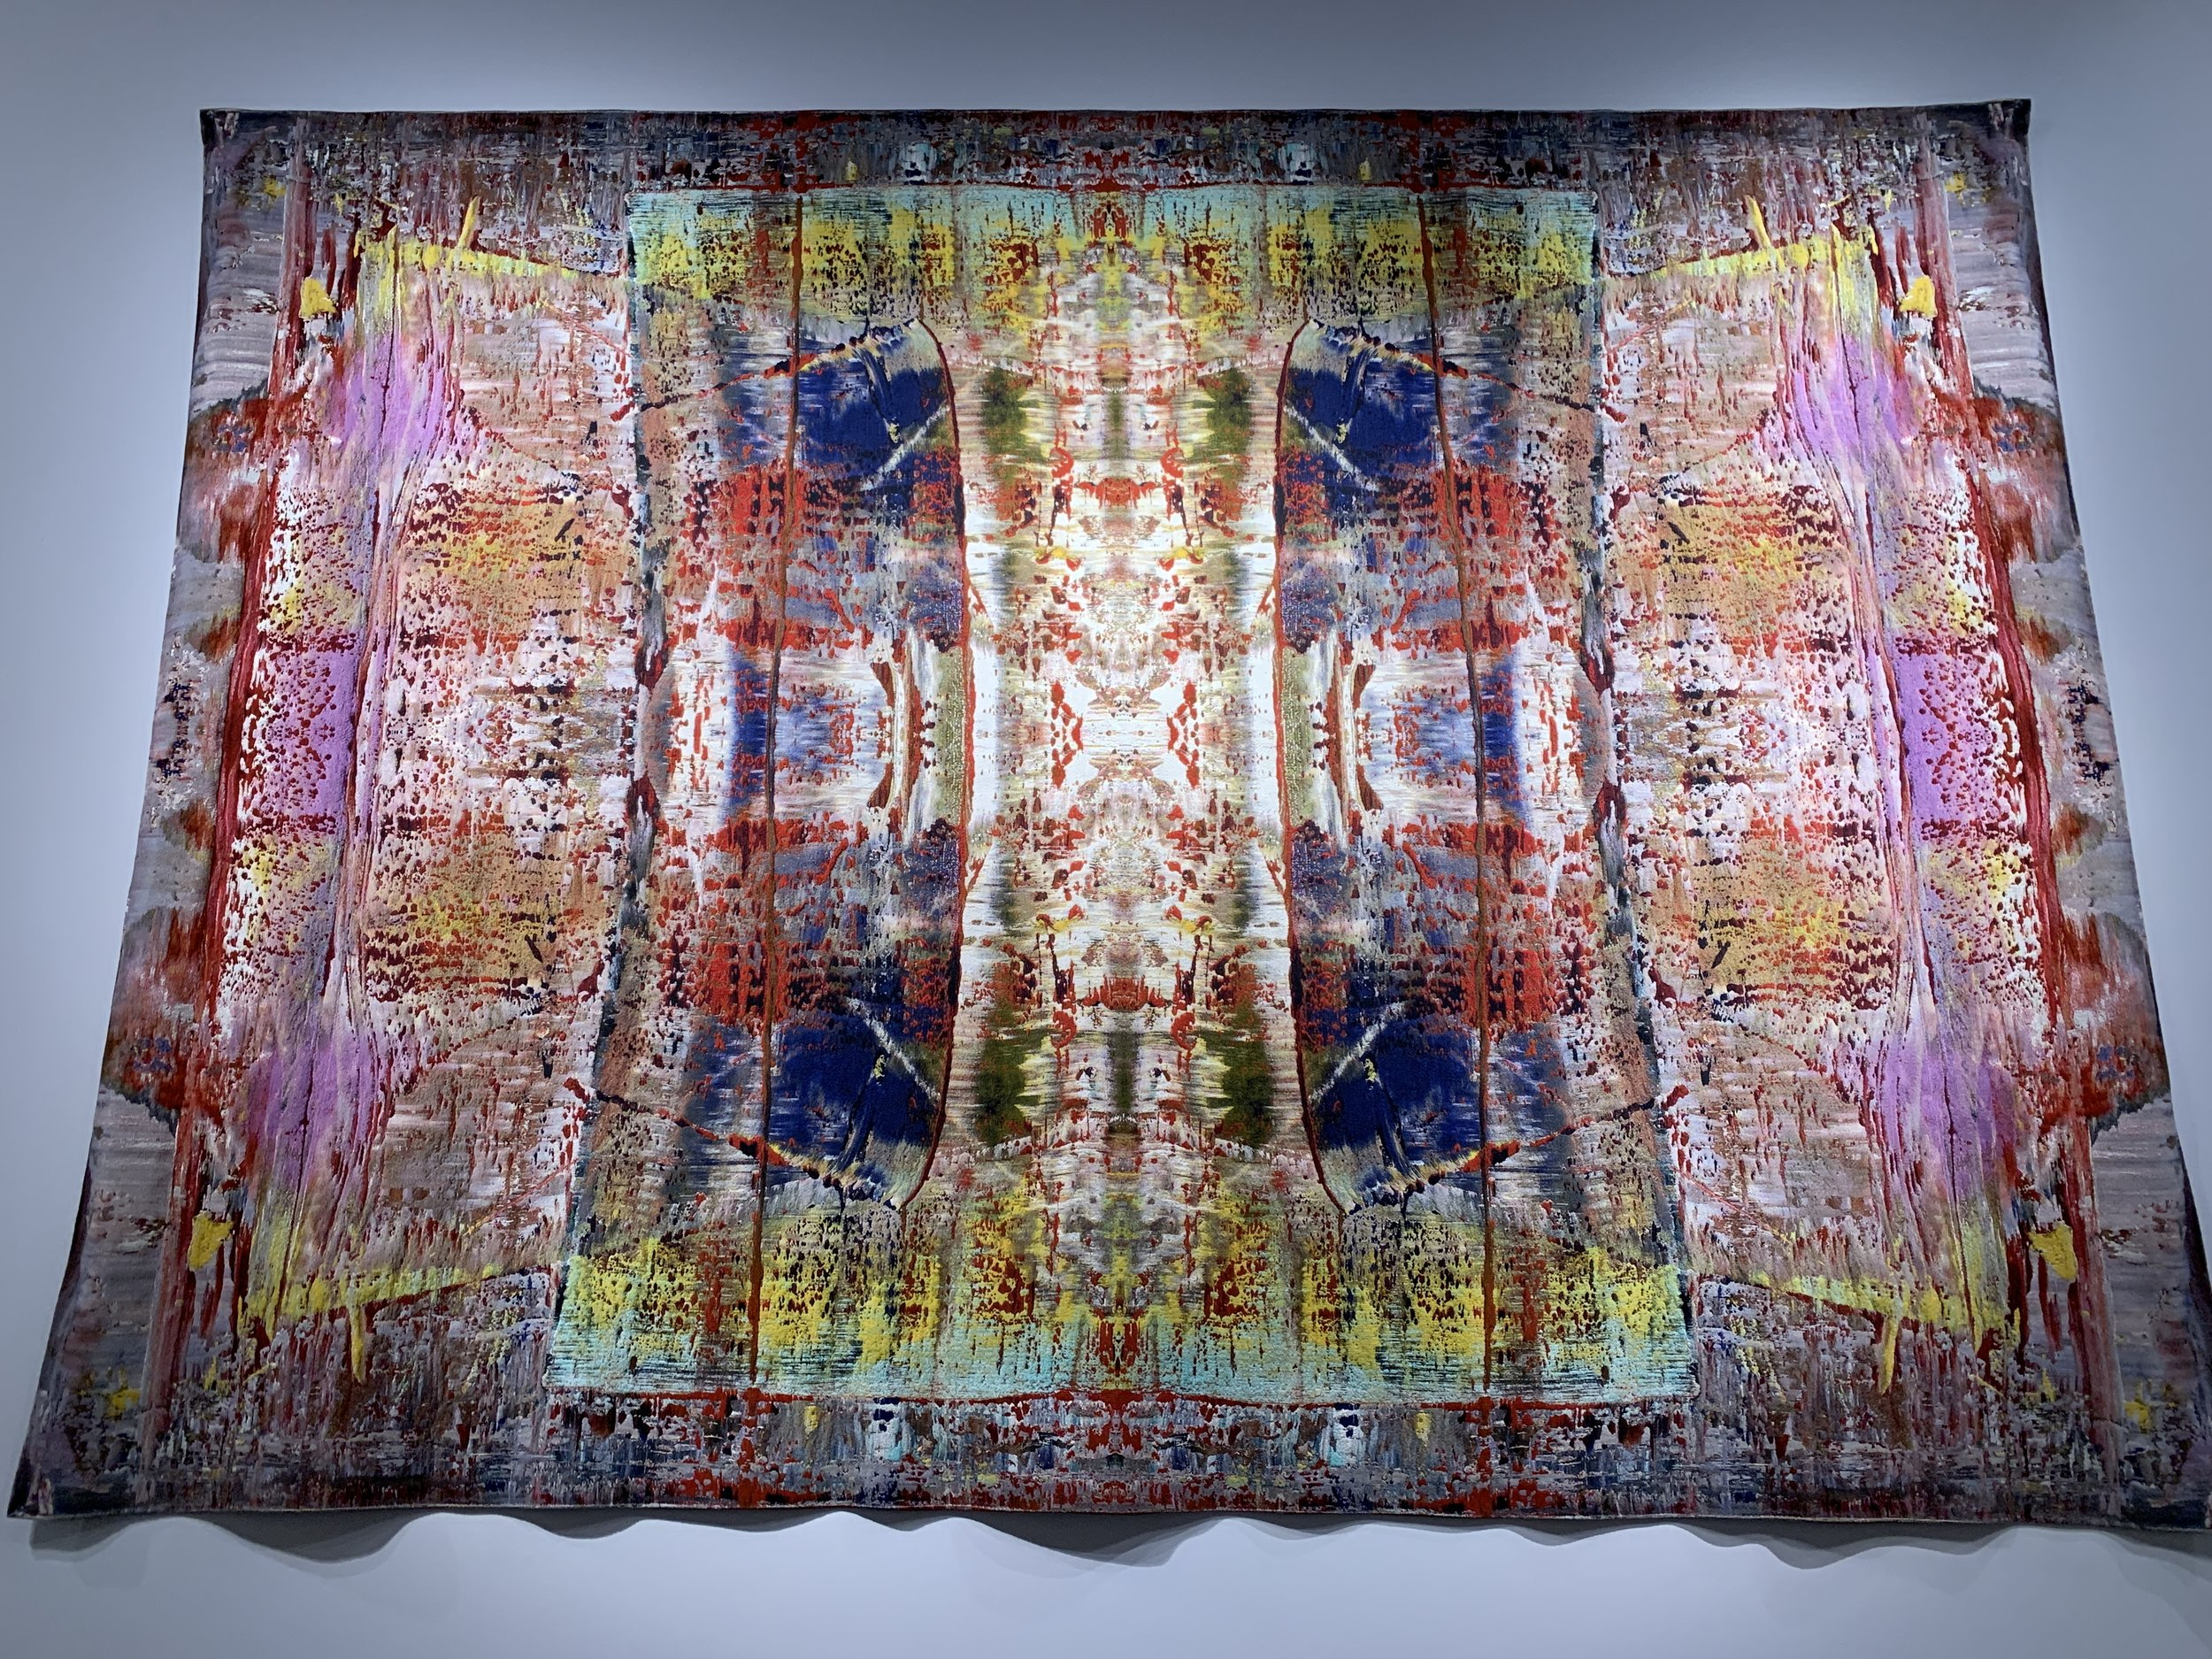 Richter tapestry, featuring quaternary pattern, photographed as installed at The Shed.